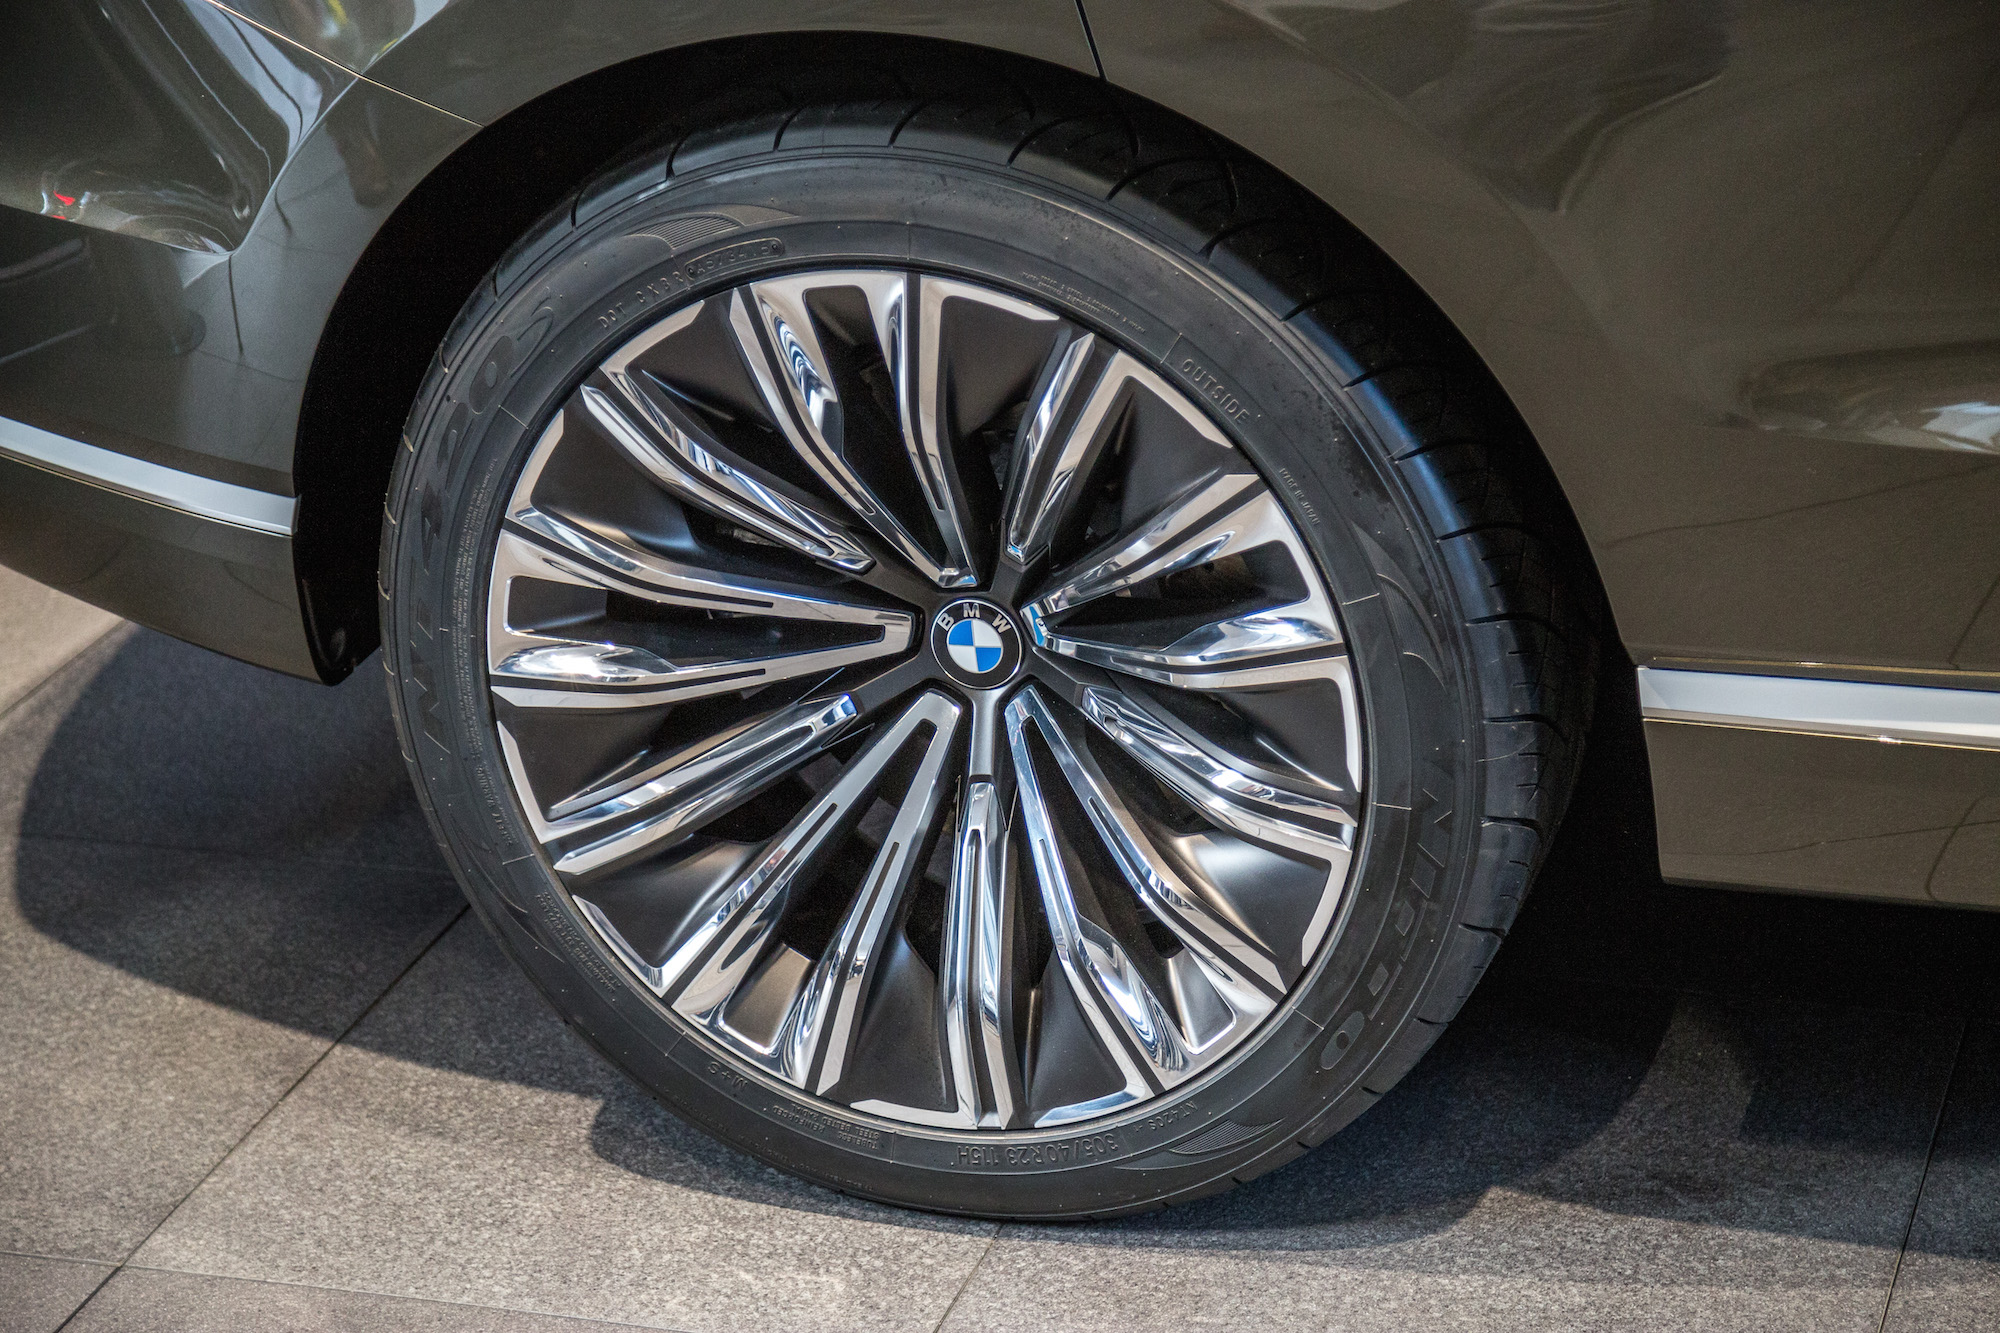 Bmw Debuts The X7 Iperformance And M5 In The Heart Of